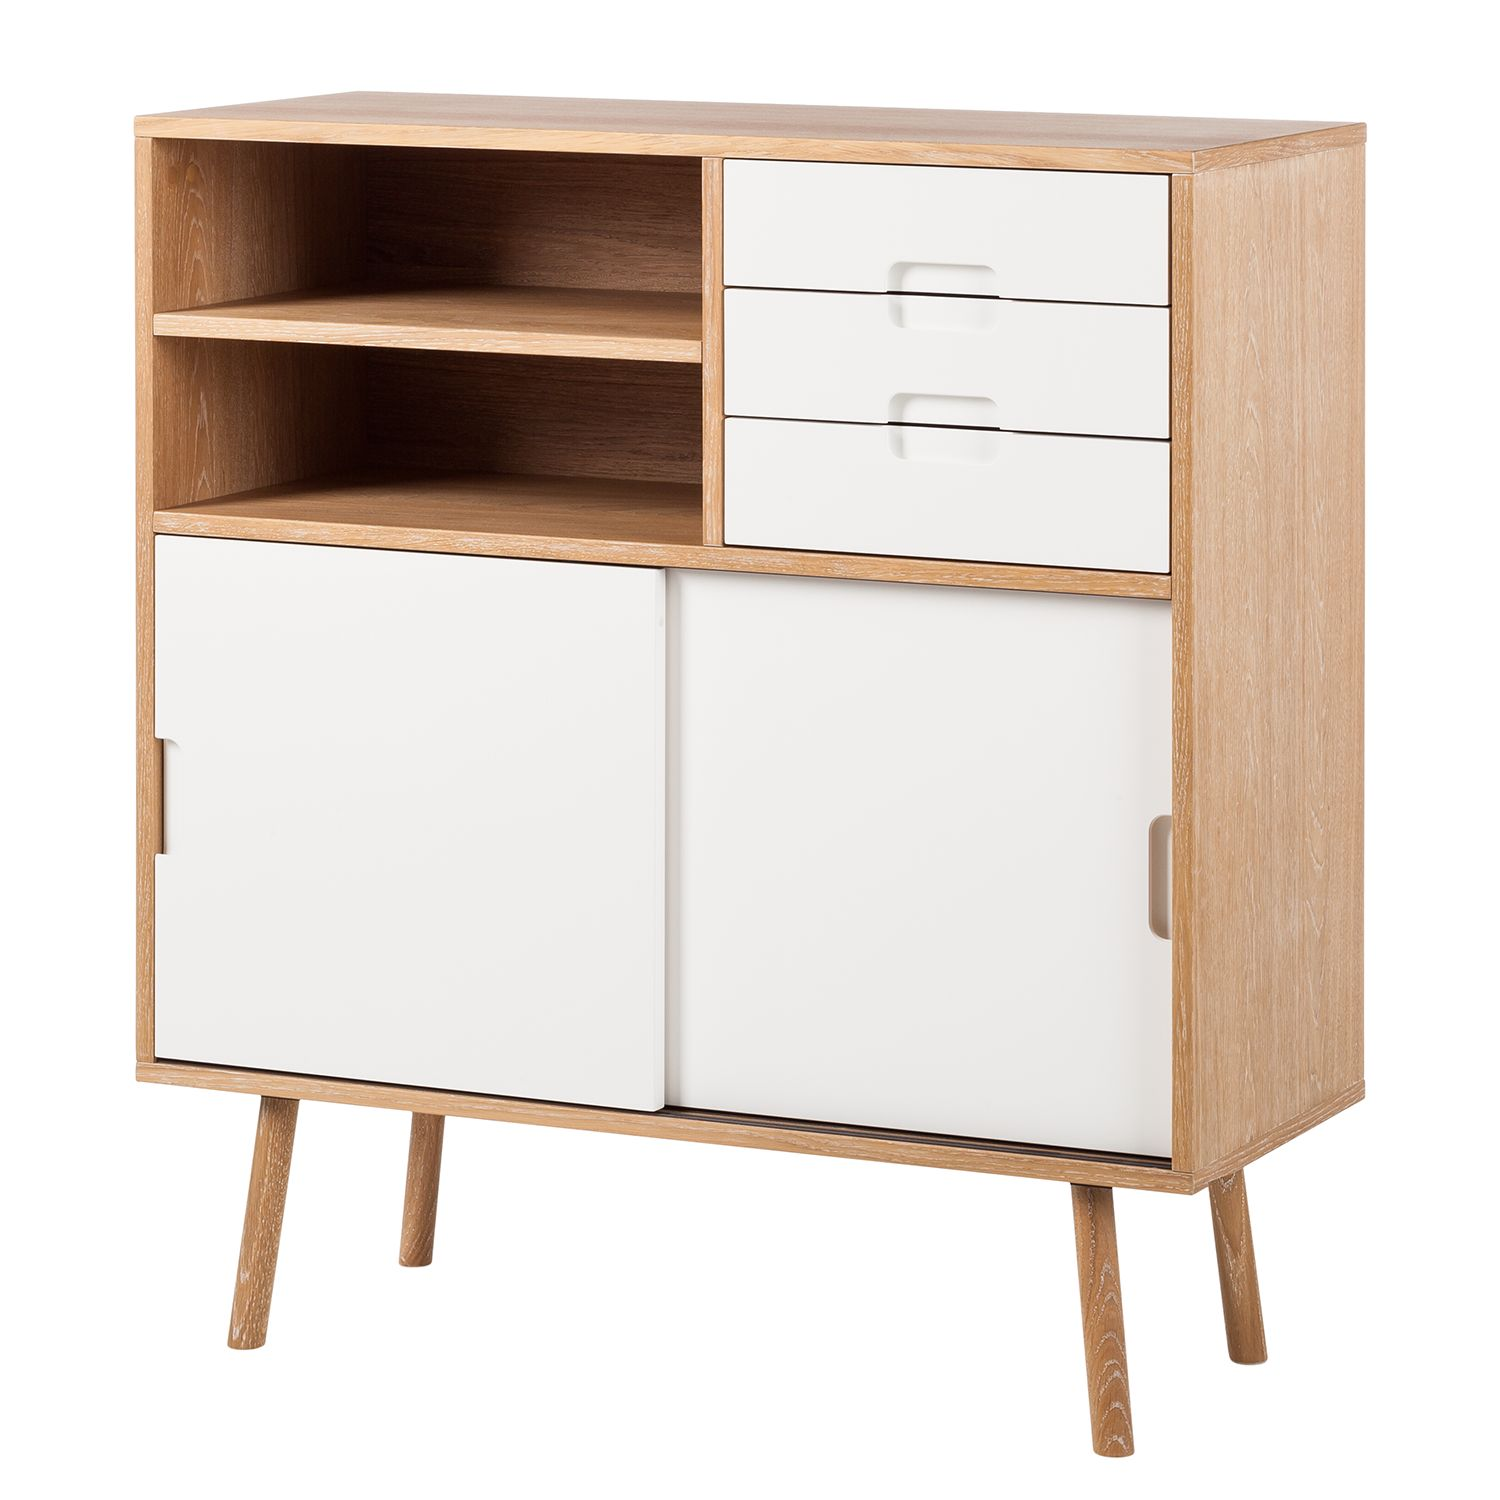 Highboard Verwood II - Eiche / Weiß